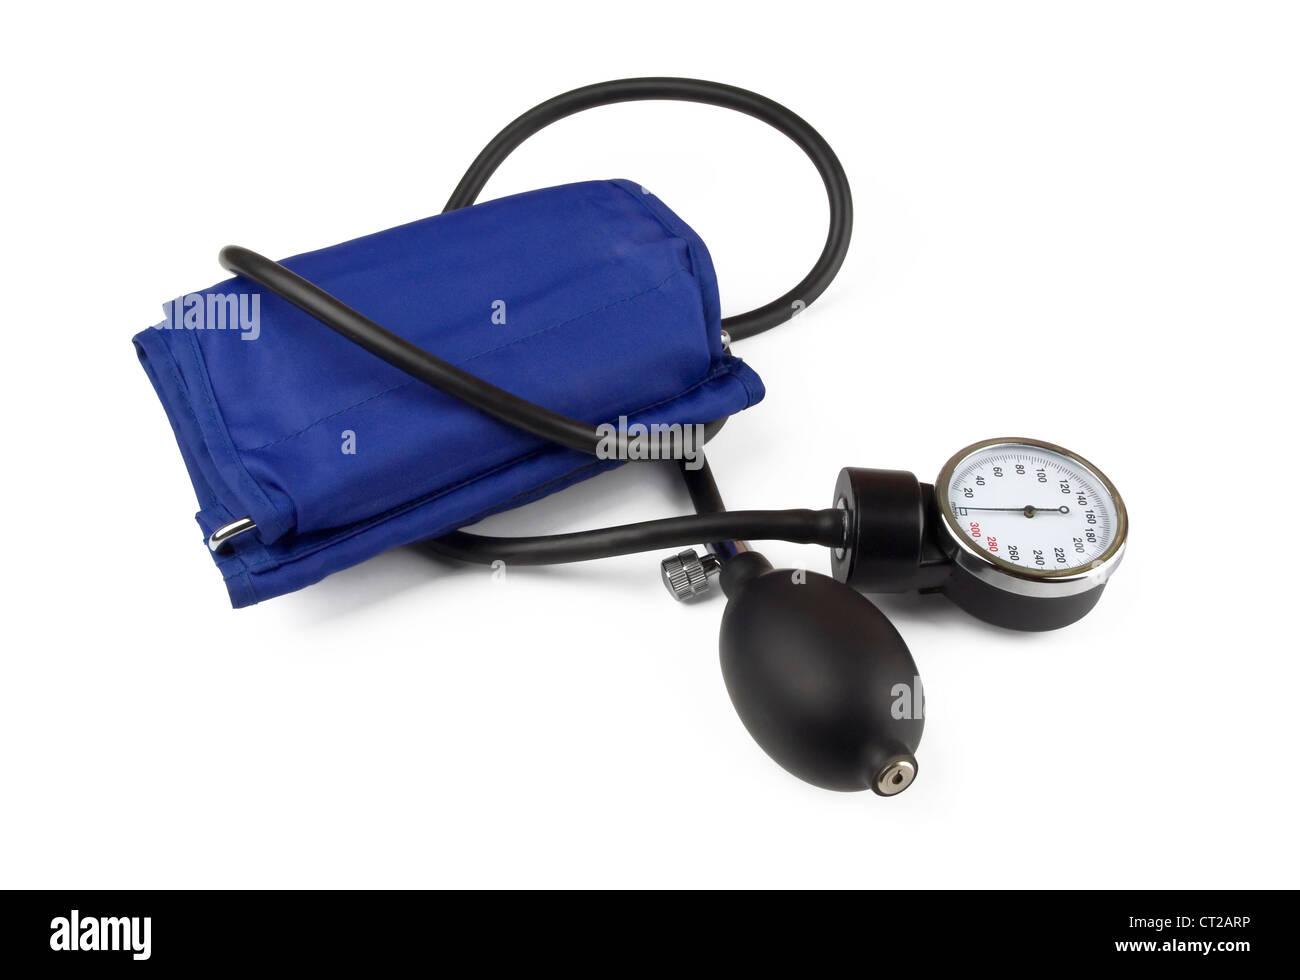 Medical sphygmomanometer for blood pressure control isolated on white - Stock Image